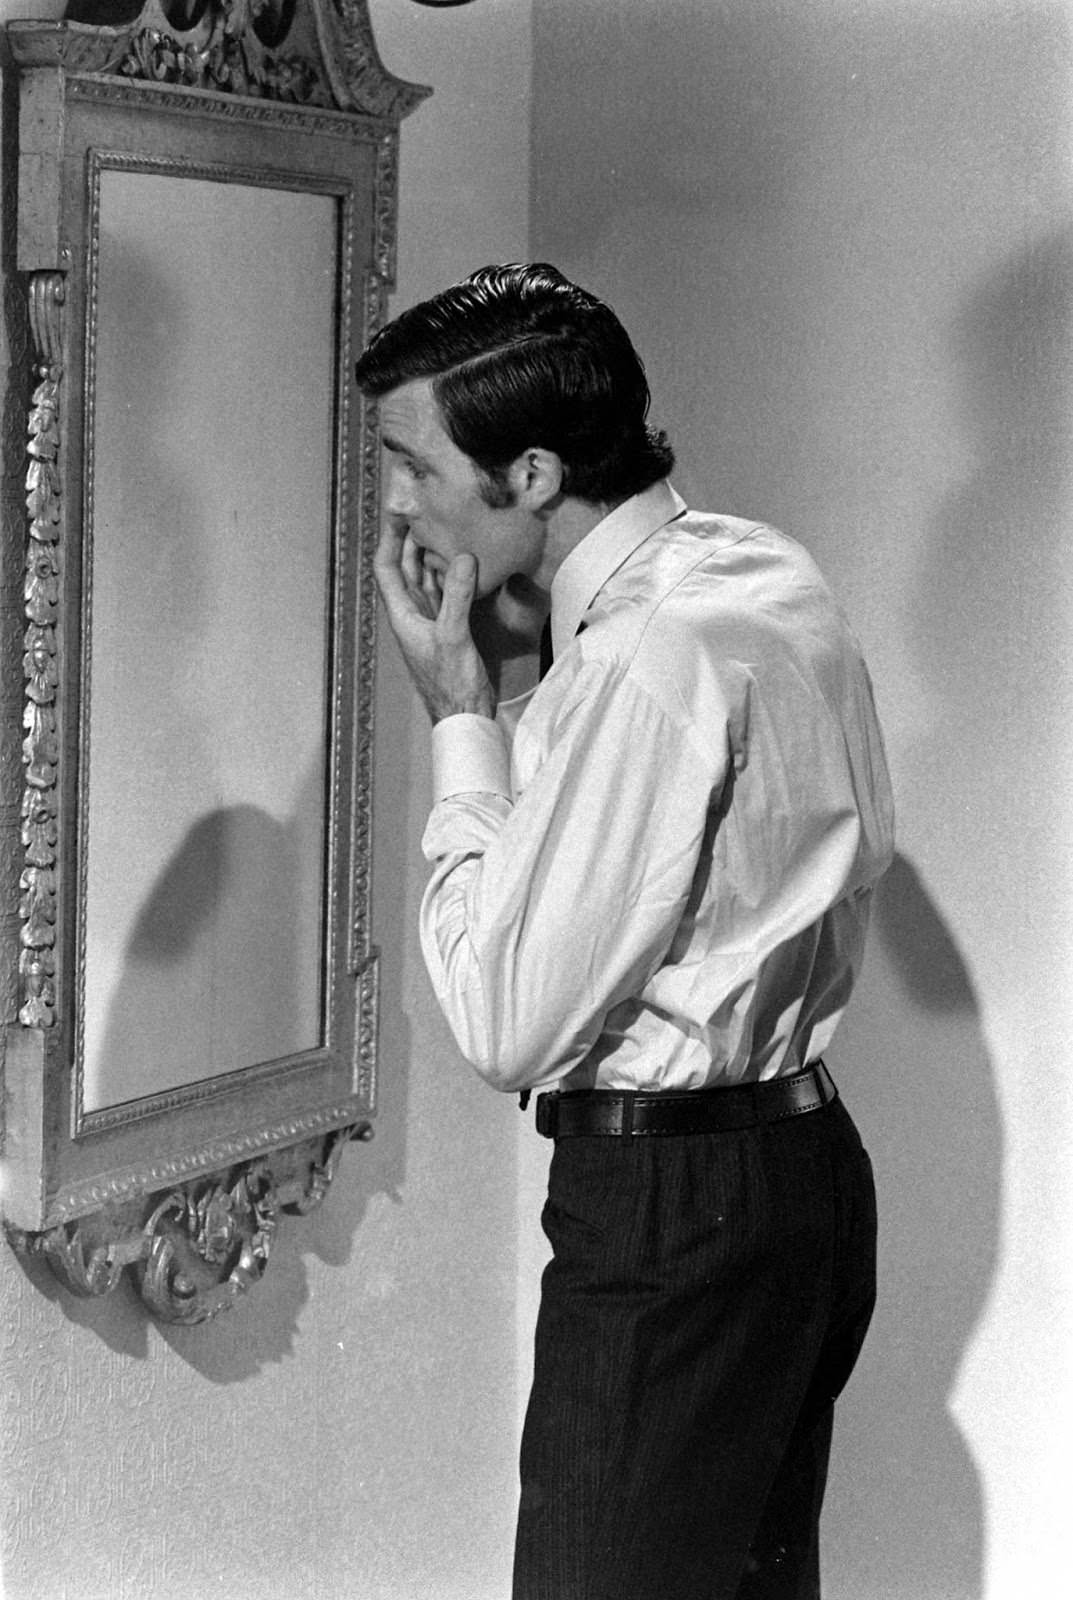 Robert Campbell looks in the mirror between filming scenes for his James Bond audition, 1967.